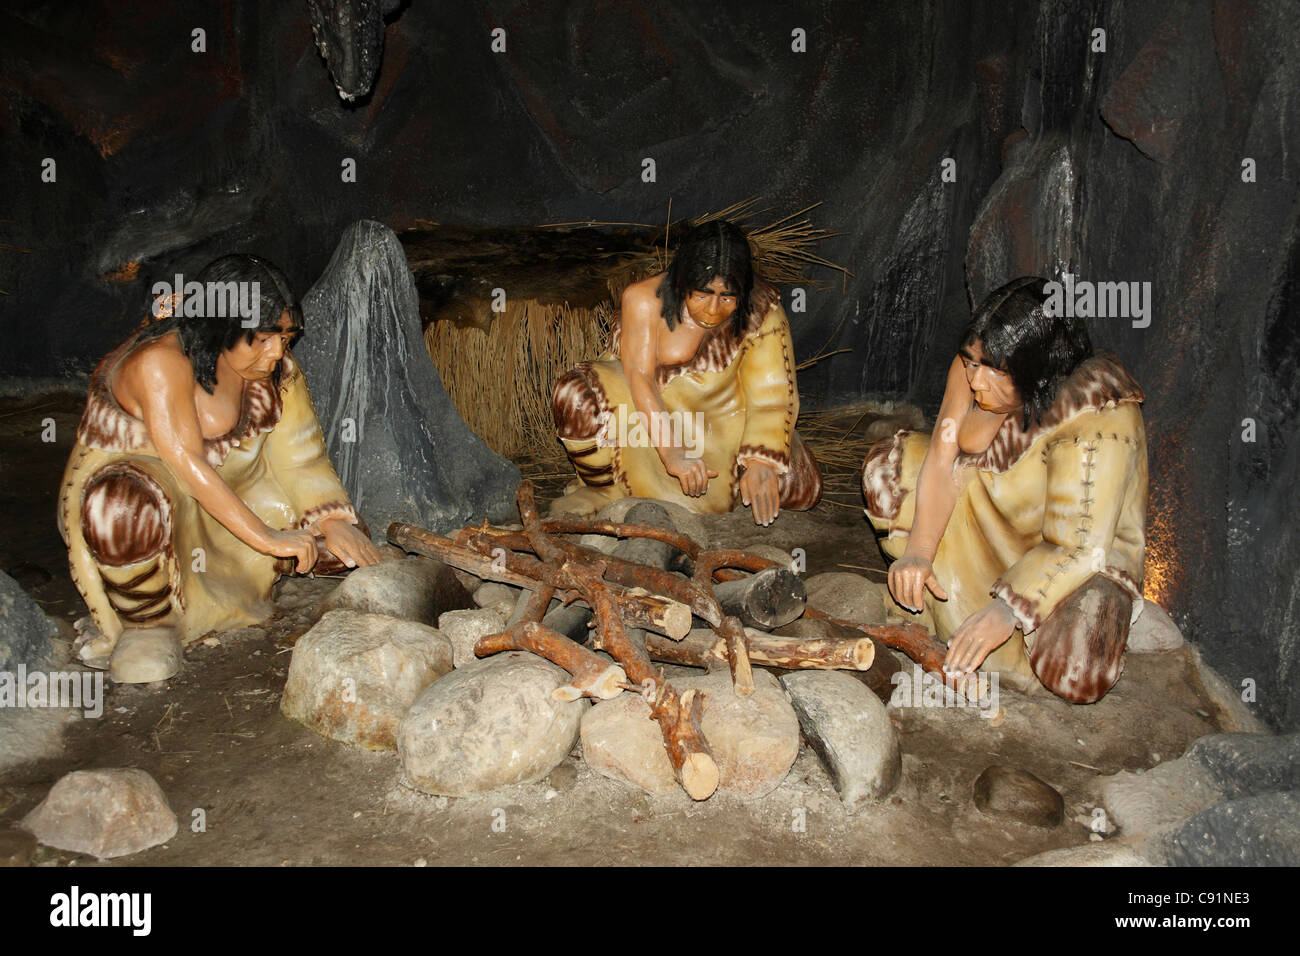 Neanderthal people sitting at the fire in a cave, Leba ...